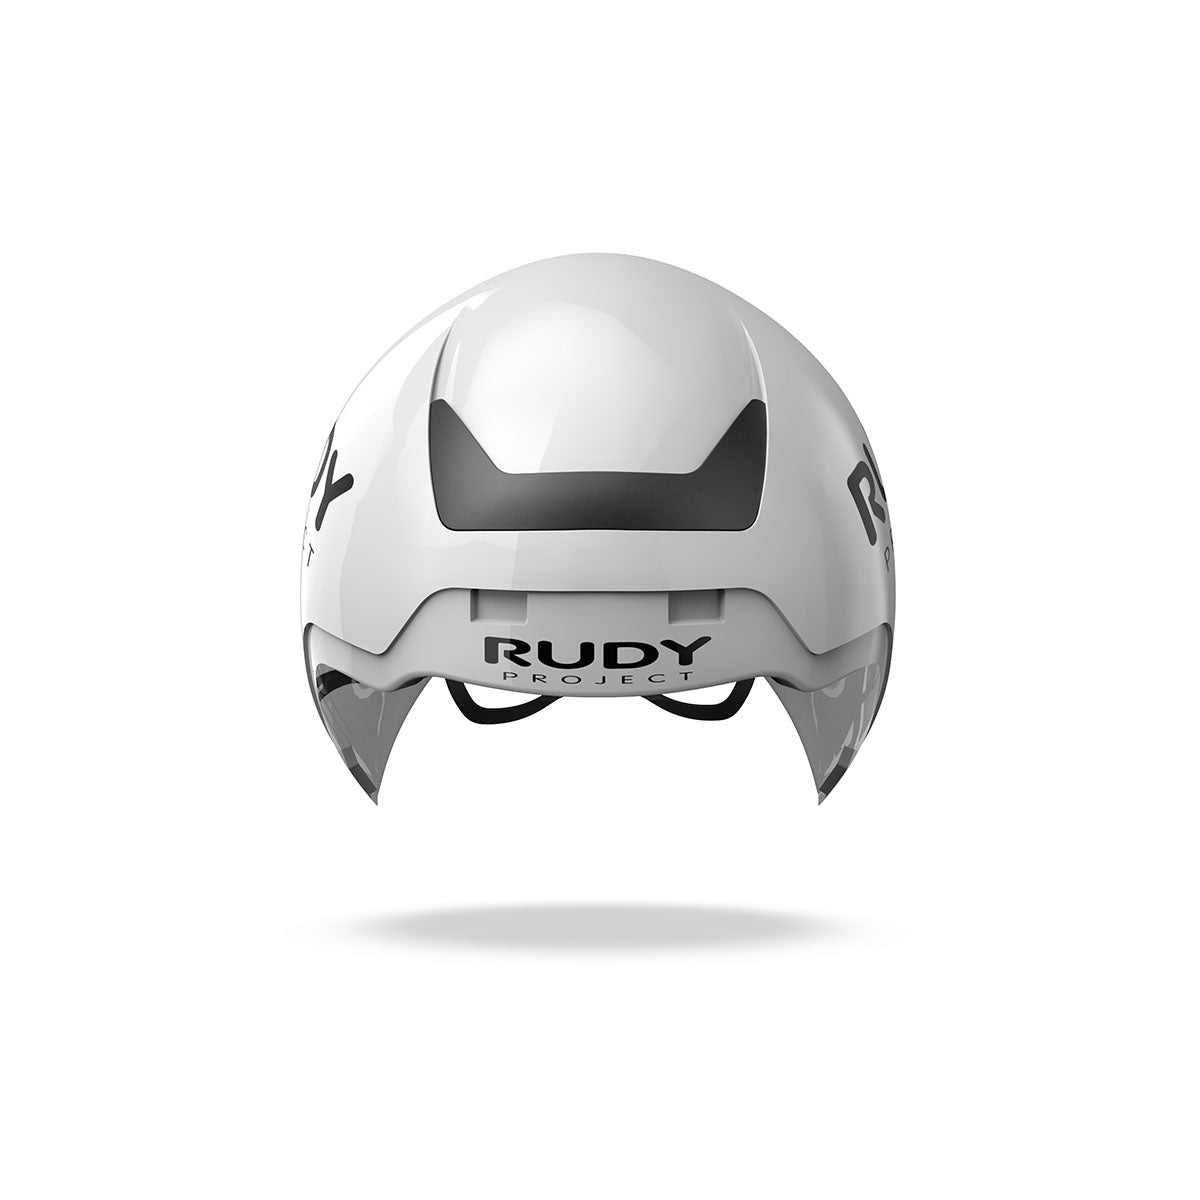 Rudy Project - The Wing - color: White - photo angle: Front Without Visor Variant Hover Image